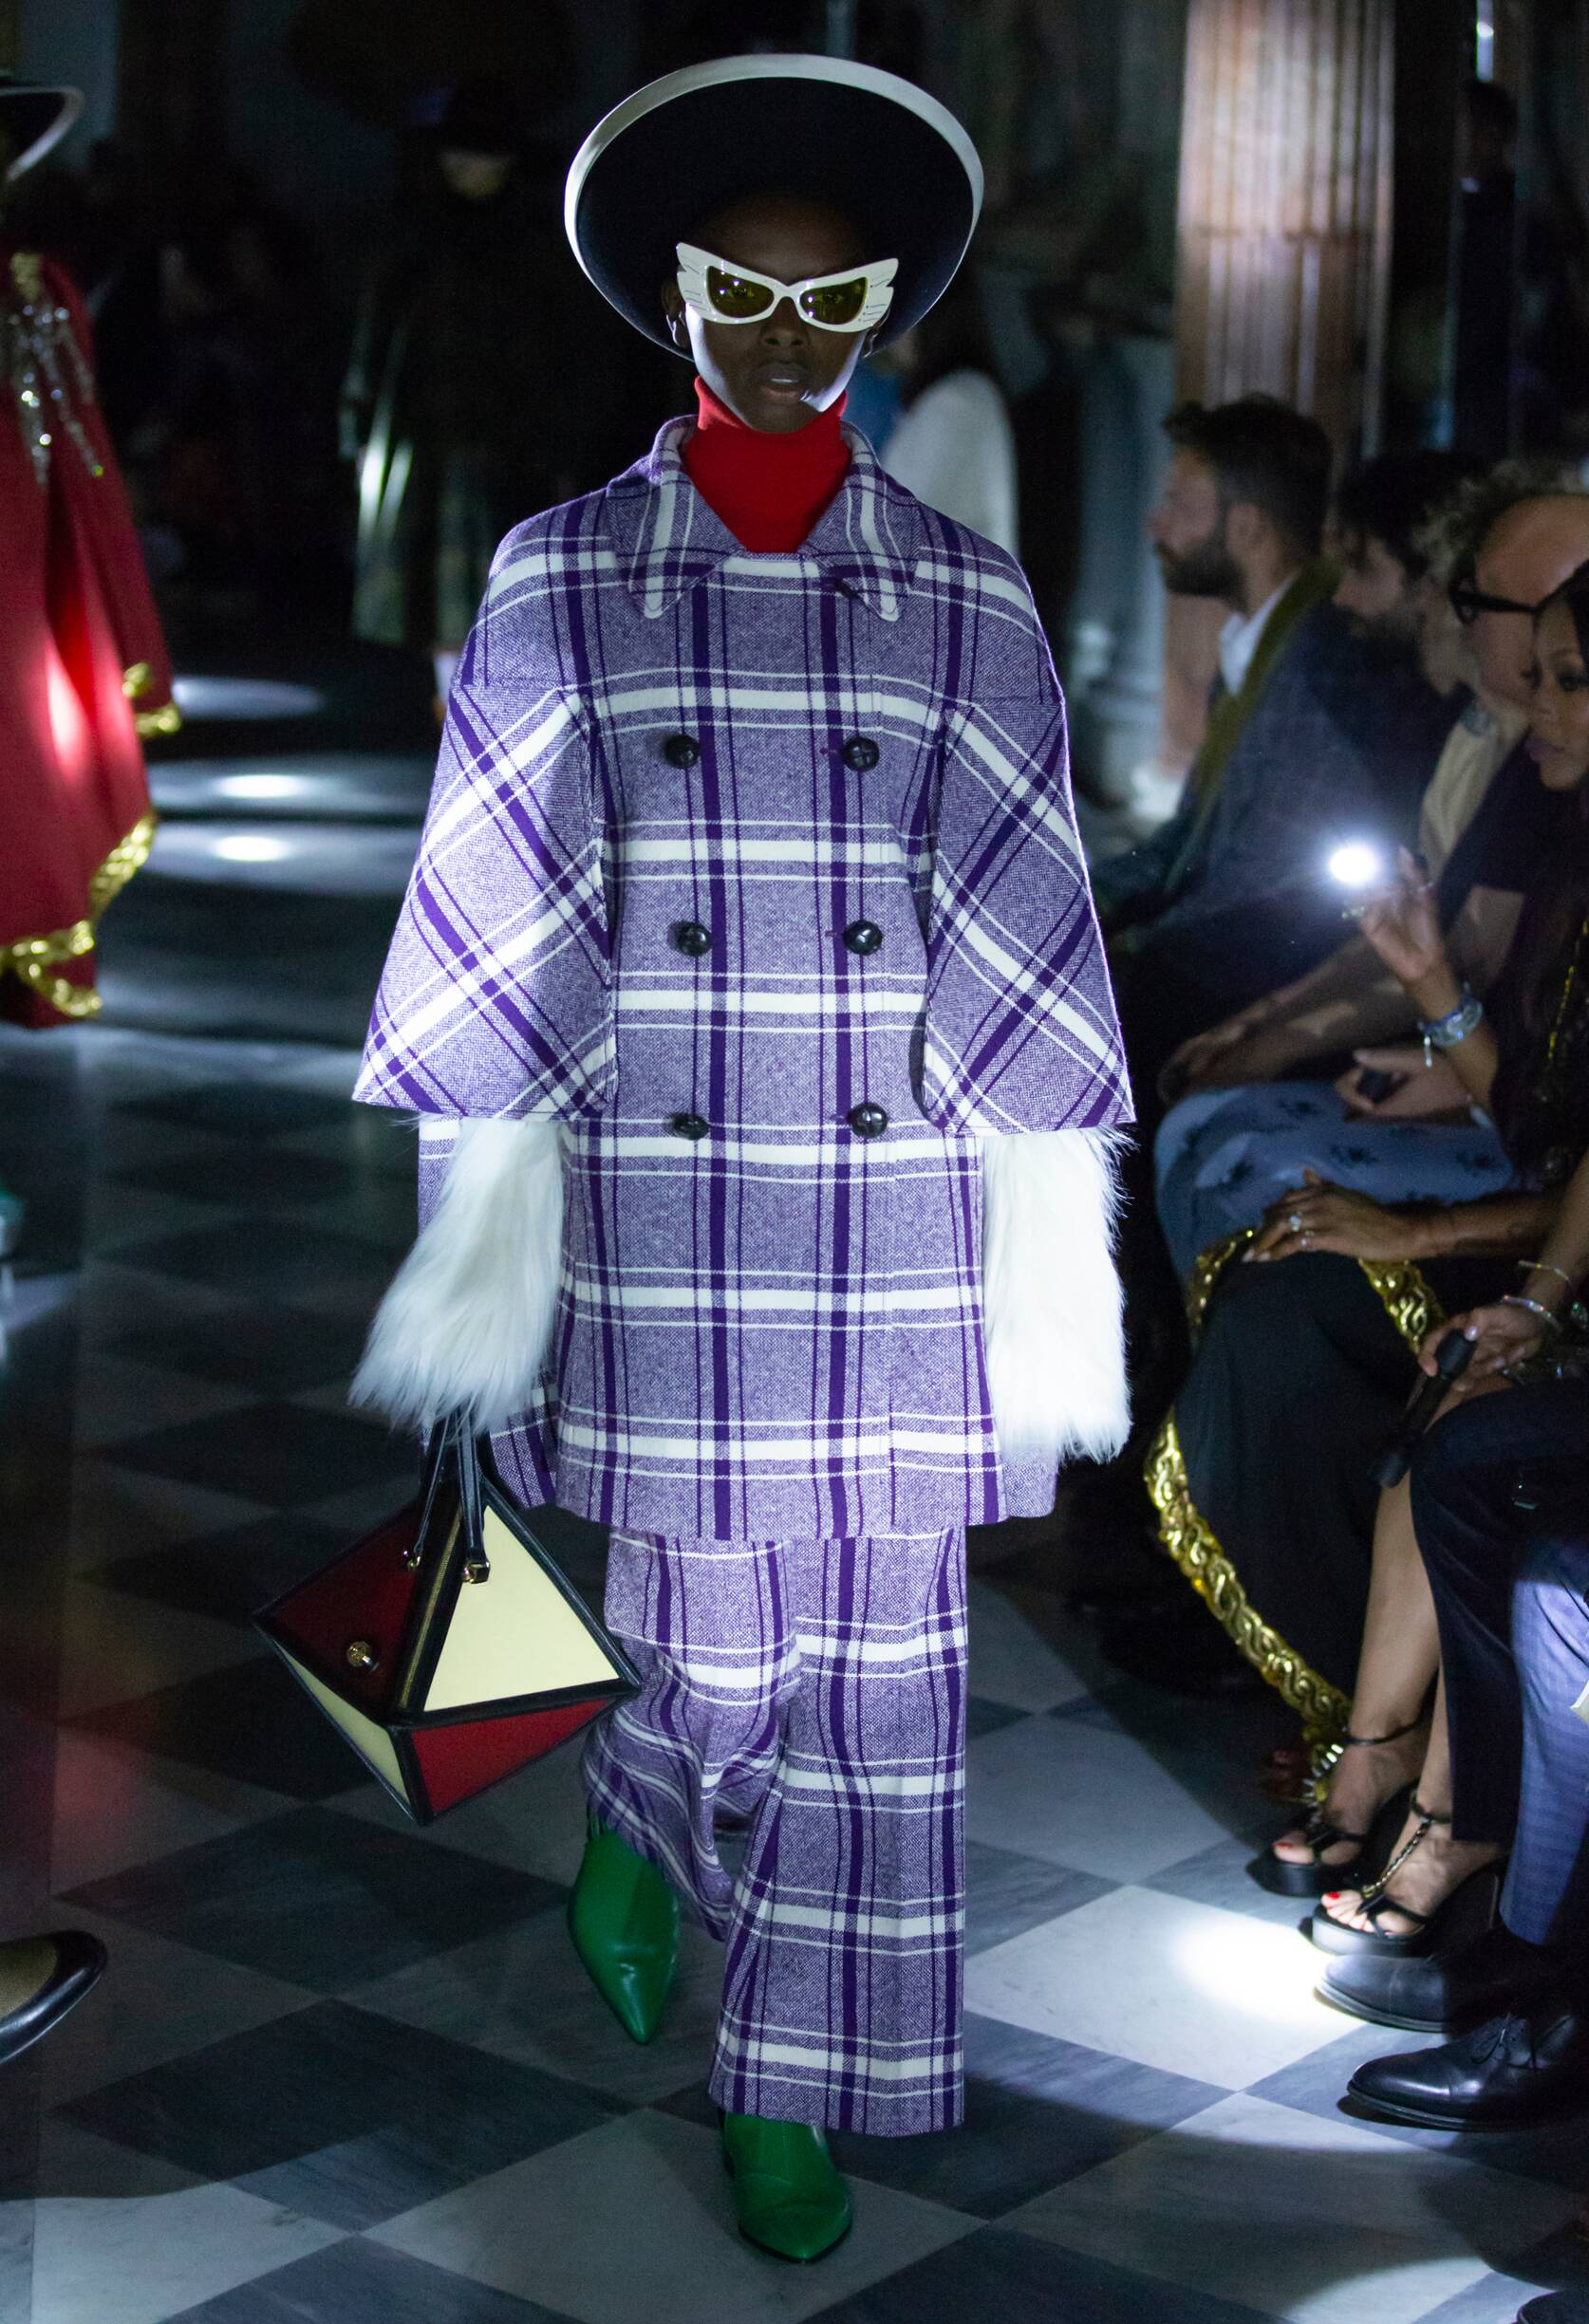 Gucci Cruise 2020 Collection Look 5 Rome